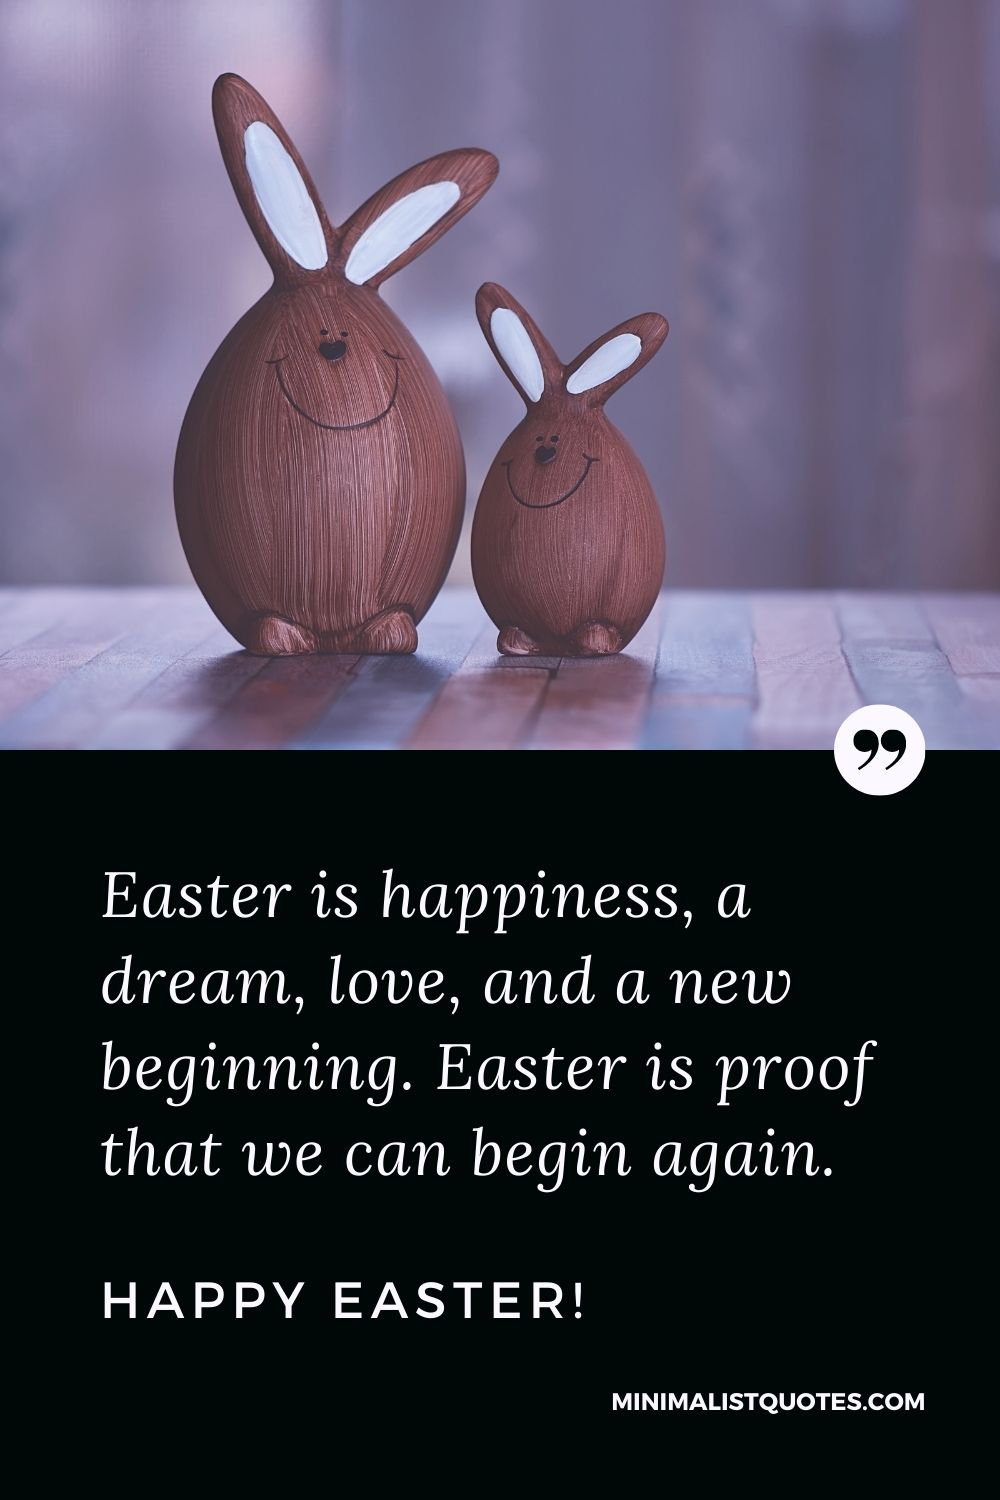 Easter Quote, Wish & Message With Image: Easter is happiness, a dream, love, and a new beginning.Easter is proof that we can begin again. Happy Easter!